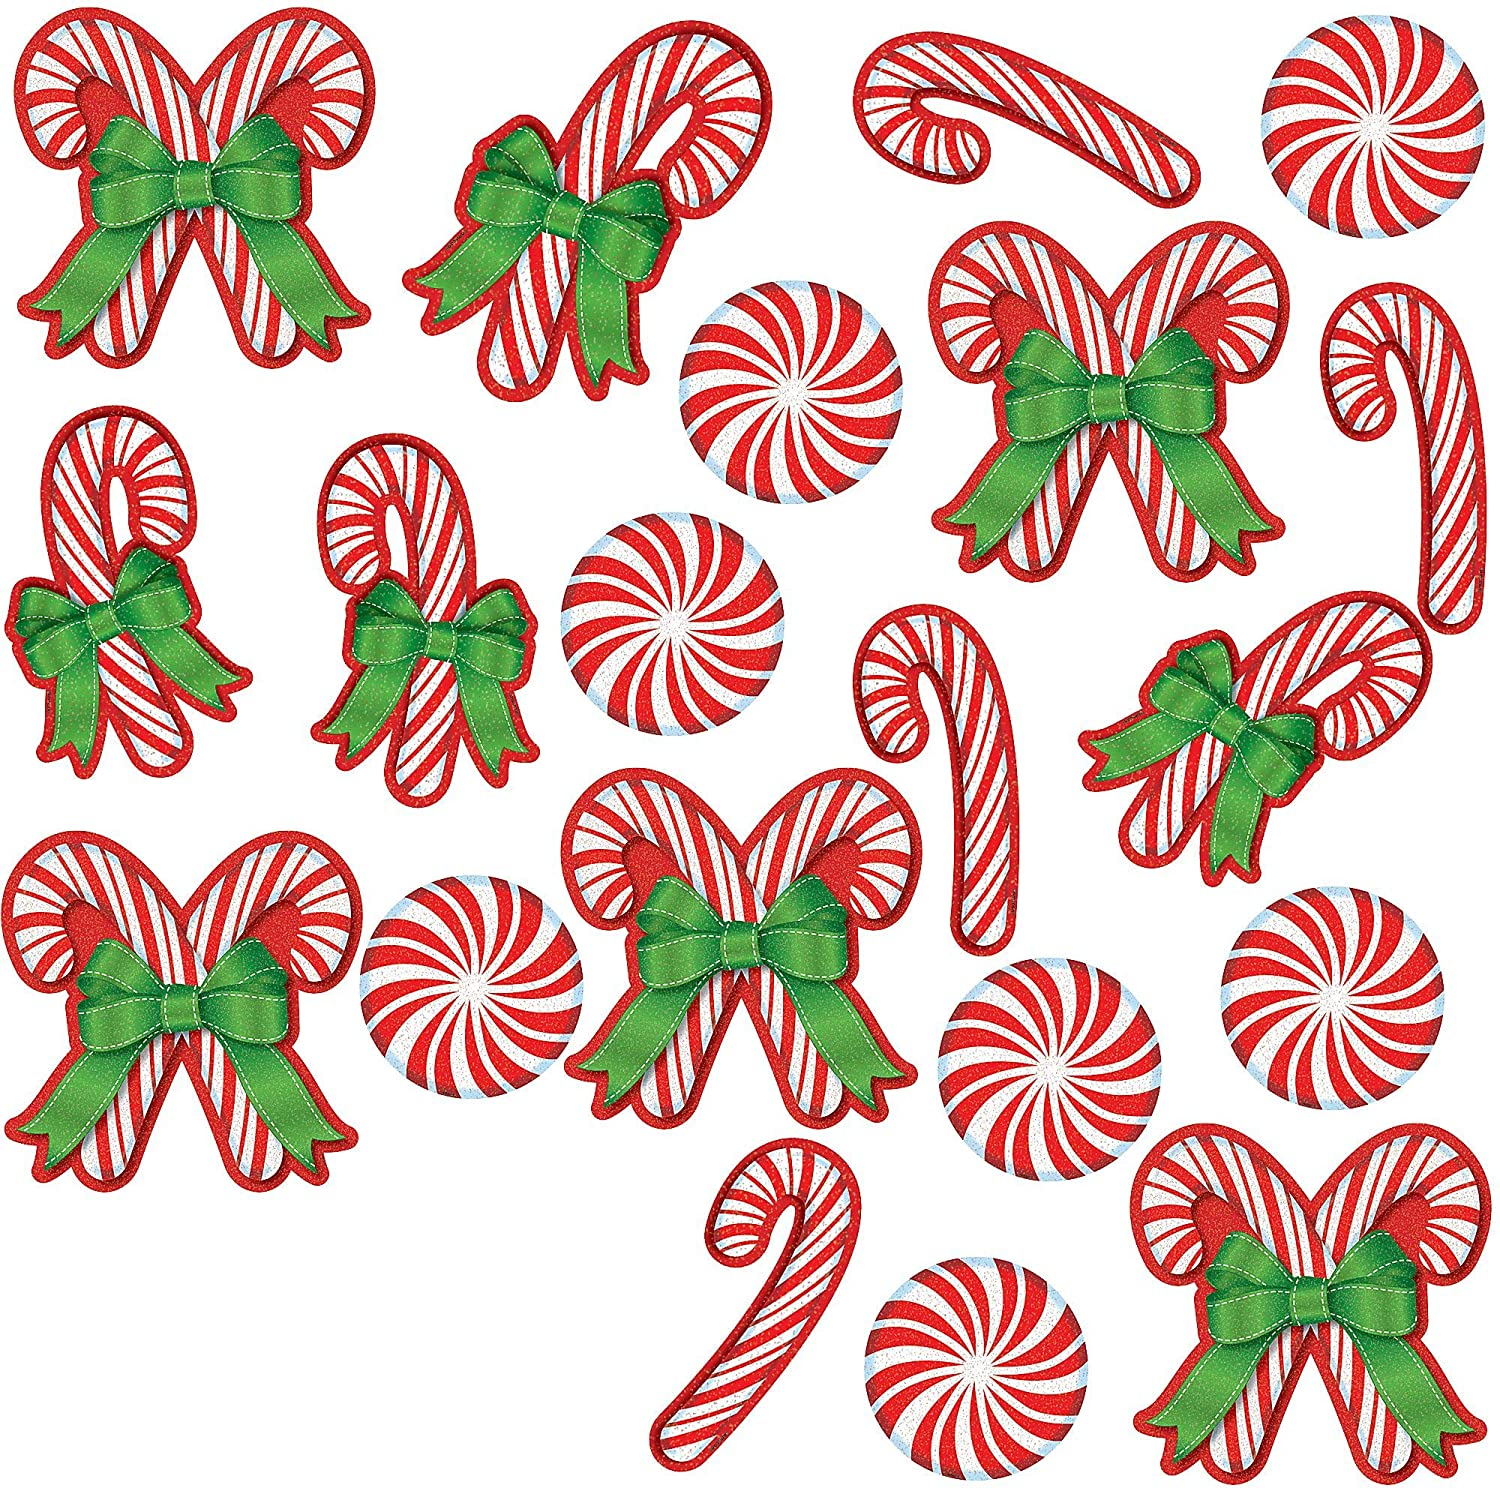 Christmas Cutouts.Amscan Christmas Paper Cutouts Mega Value Pack 20 Ct Party Decoration